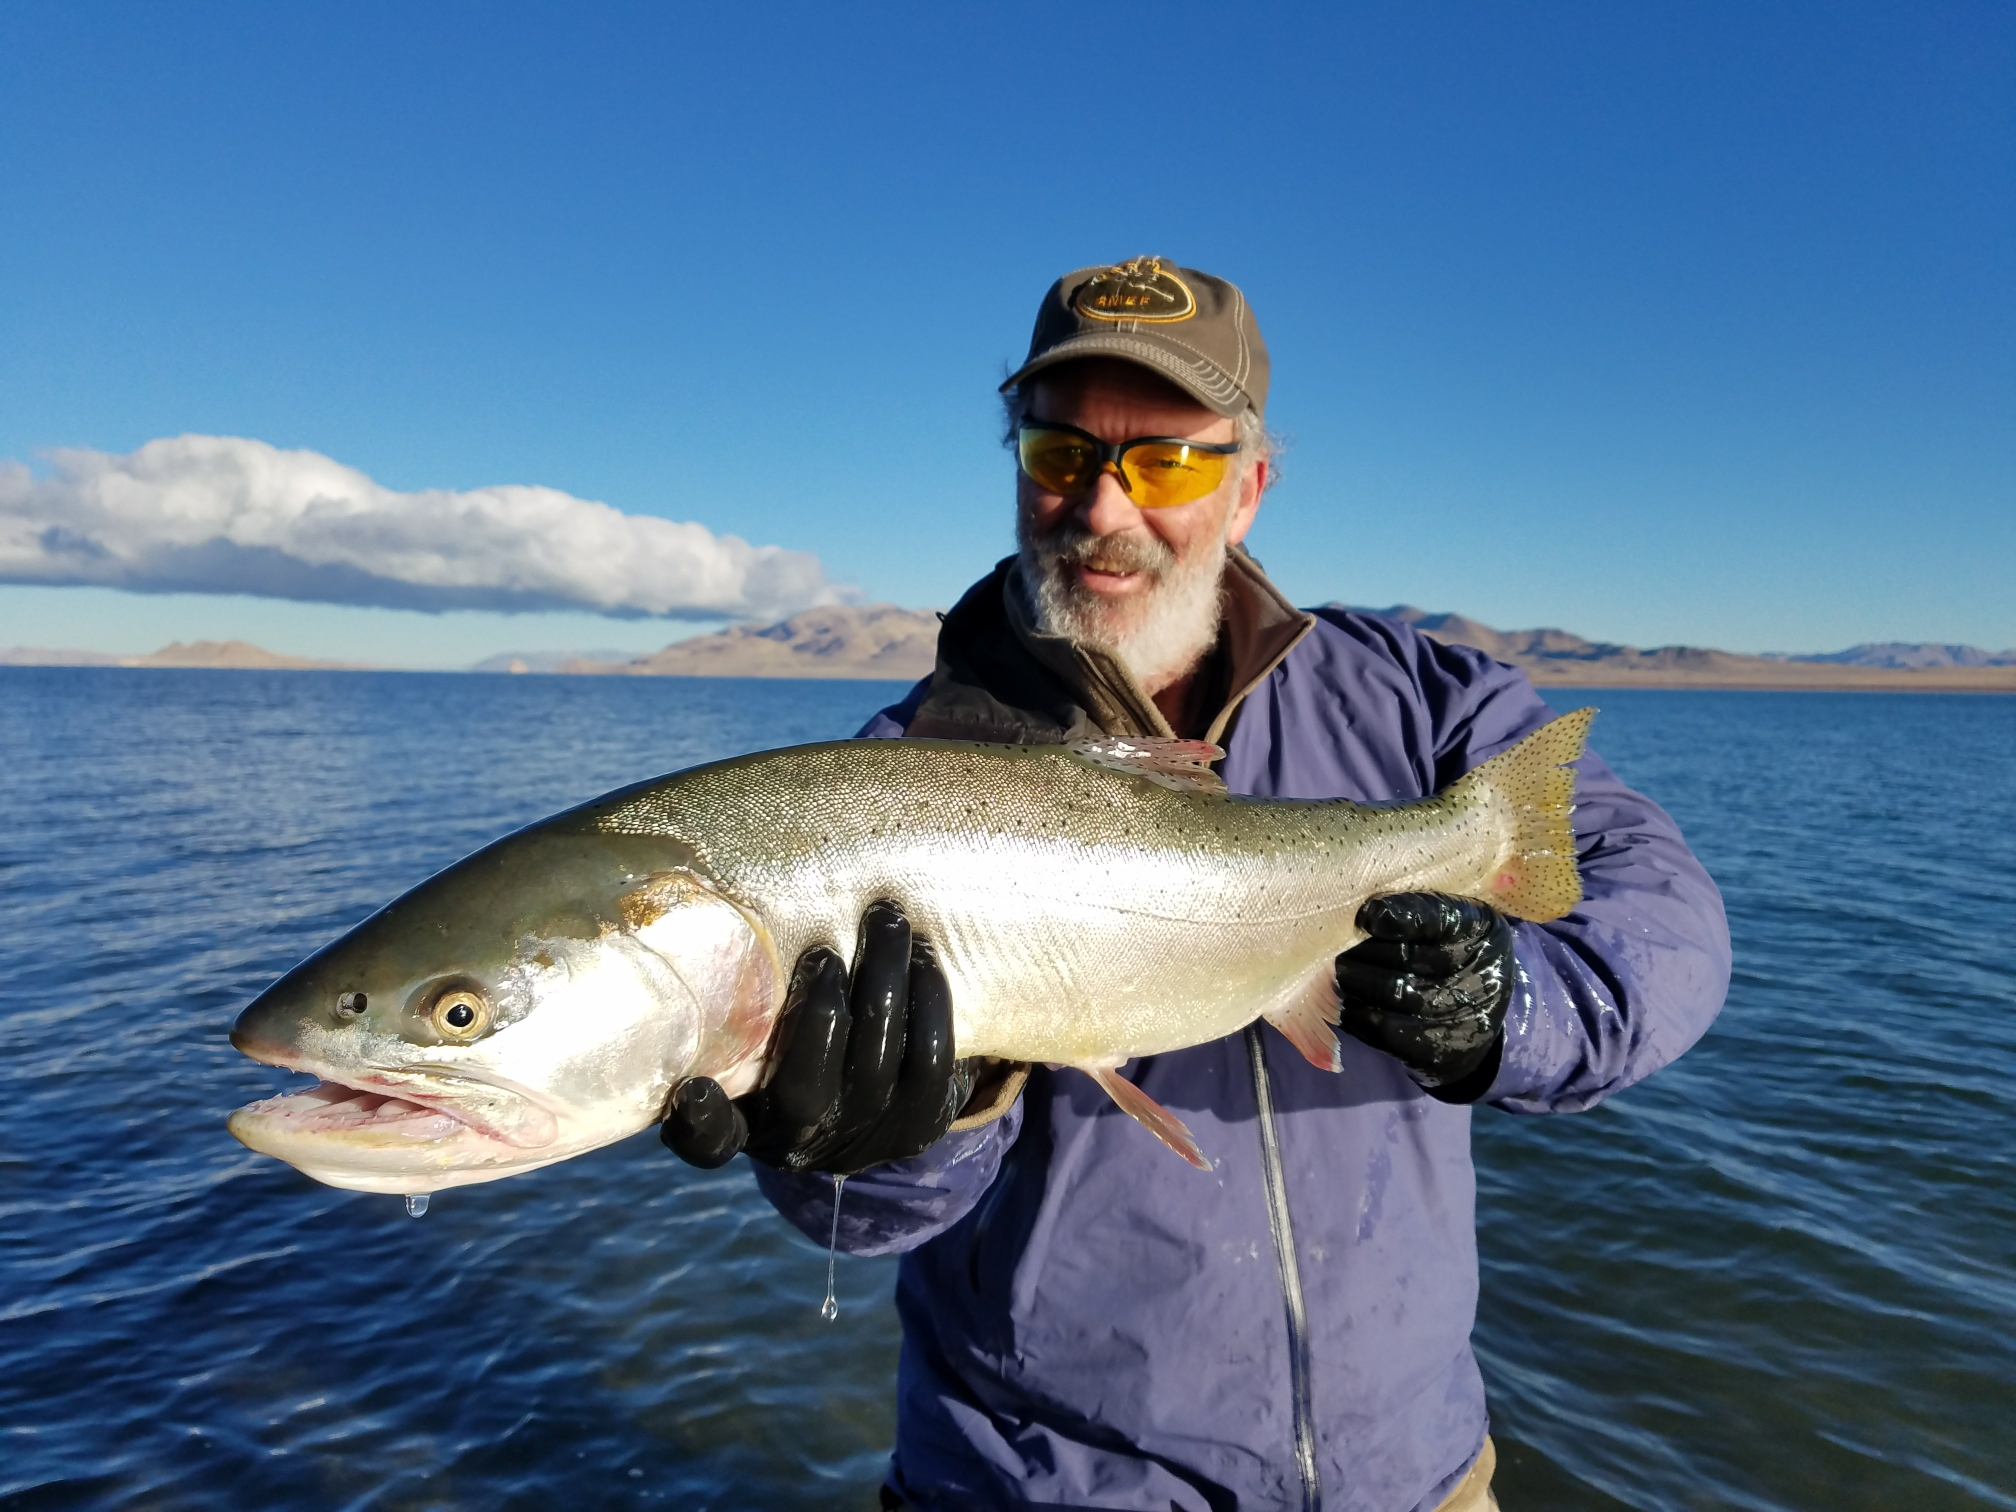 Pyramid lake fly fishing the best fish 2018 for How much is a non resident fishing license in florida